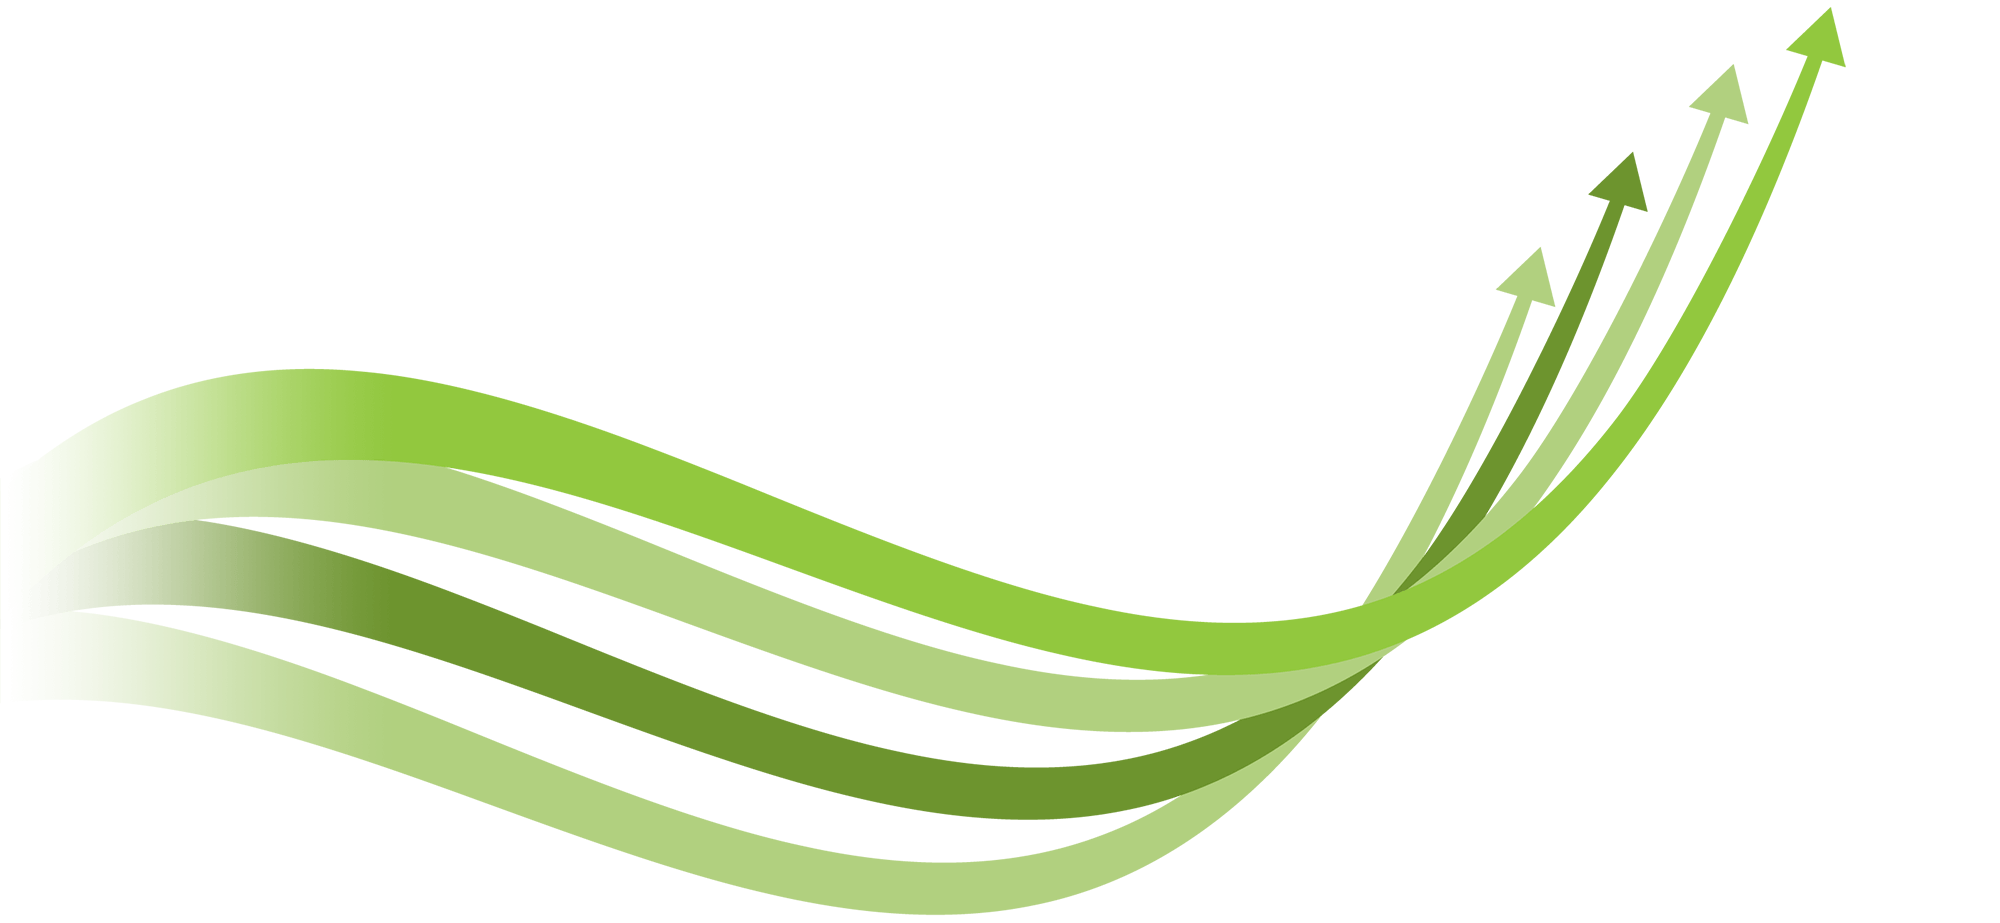 A series of green arrows swooping upwards from left to right